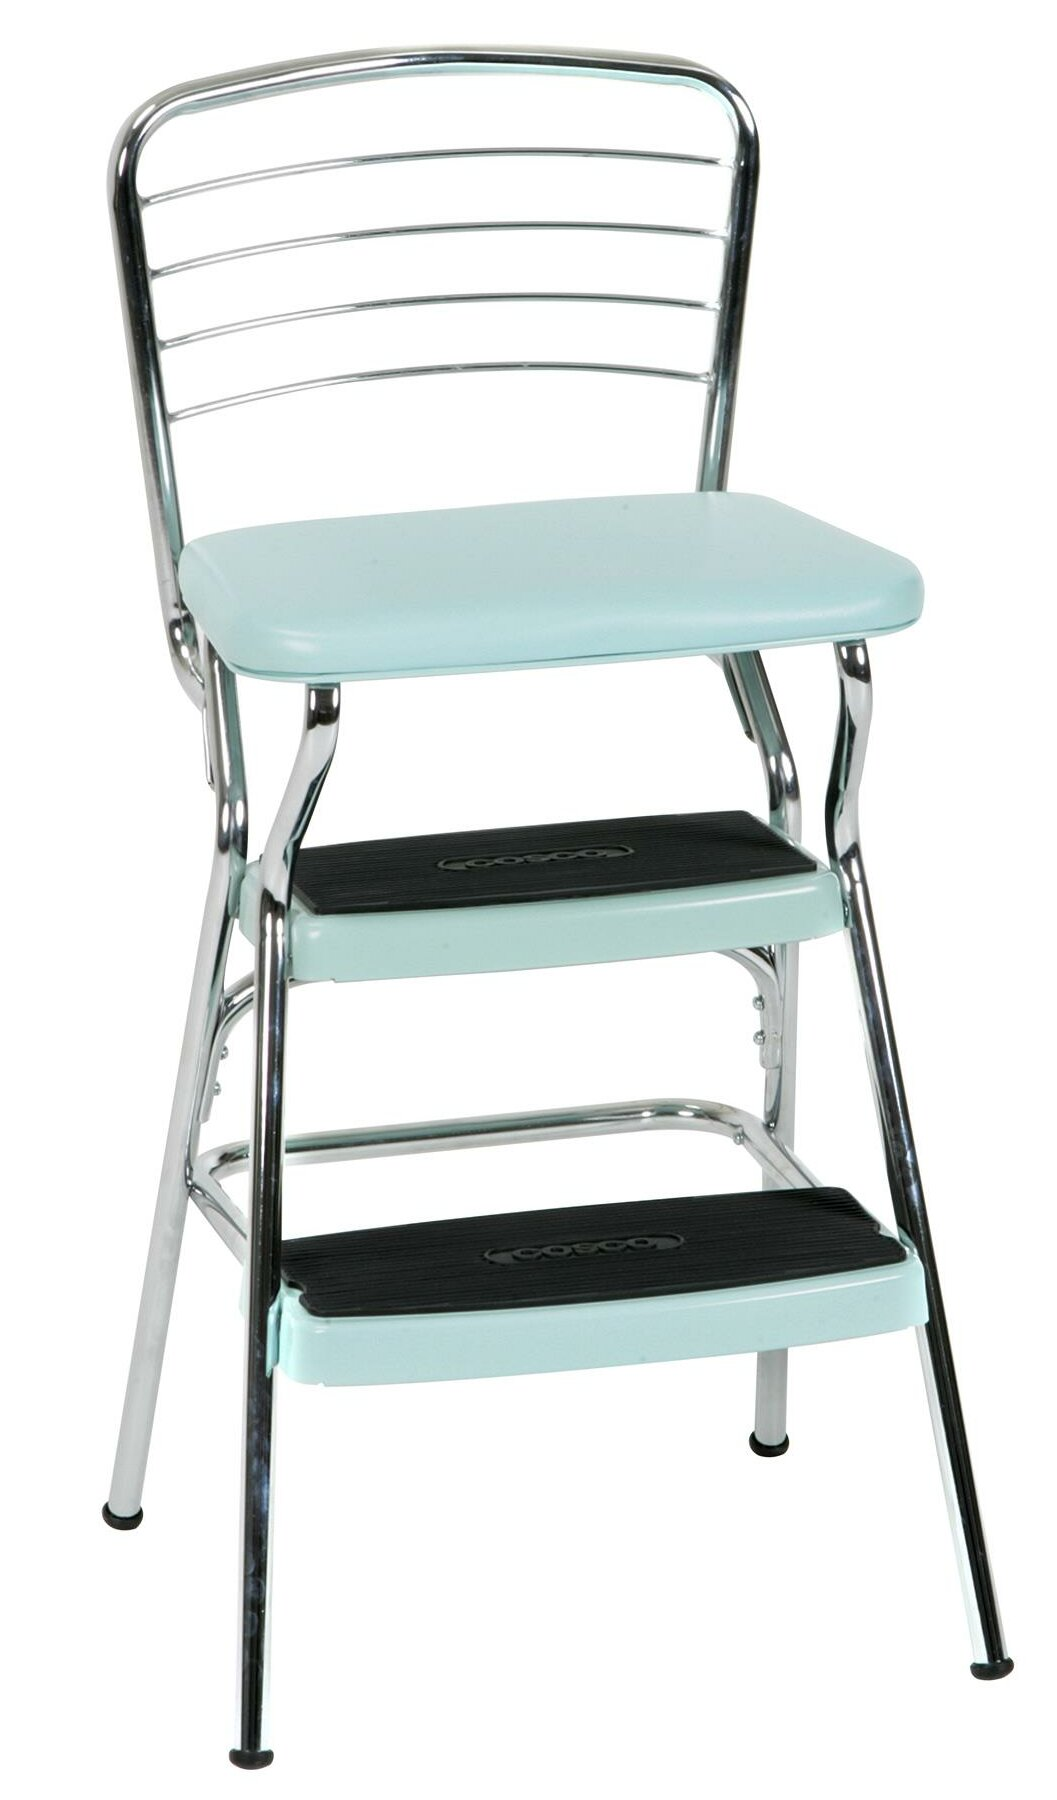 Enjoyable Thorson 3 Step Steel Step Stool Ibusinesslaw Wood Chair Design Ideas Ibusinesslaworg